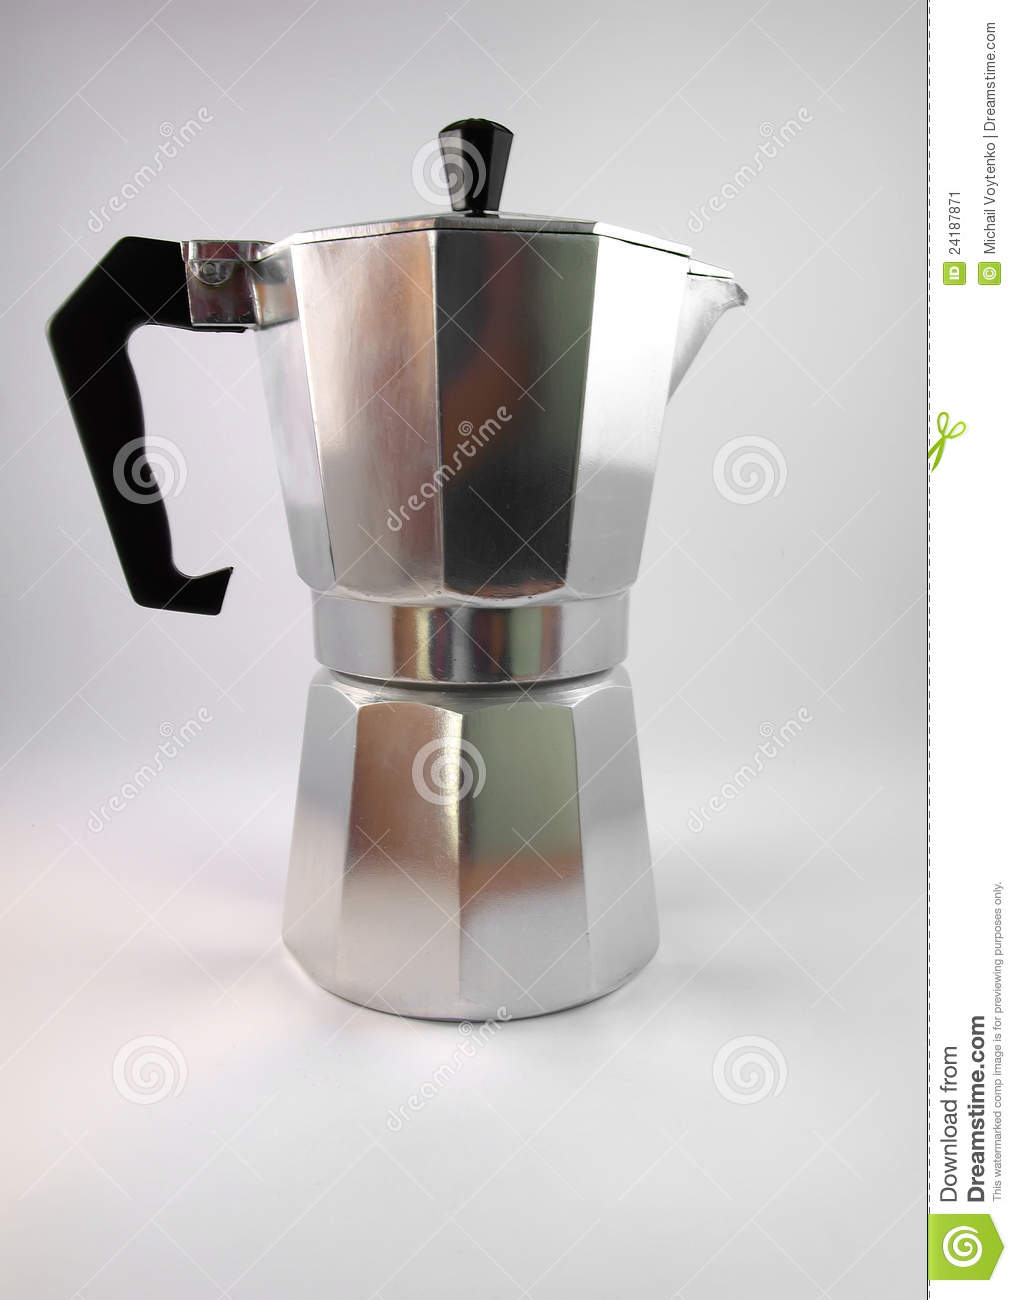 Classic Italian Coffee Maker Stock Image - Image: 24187871